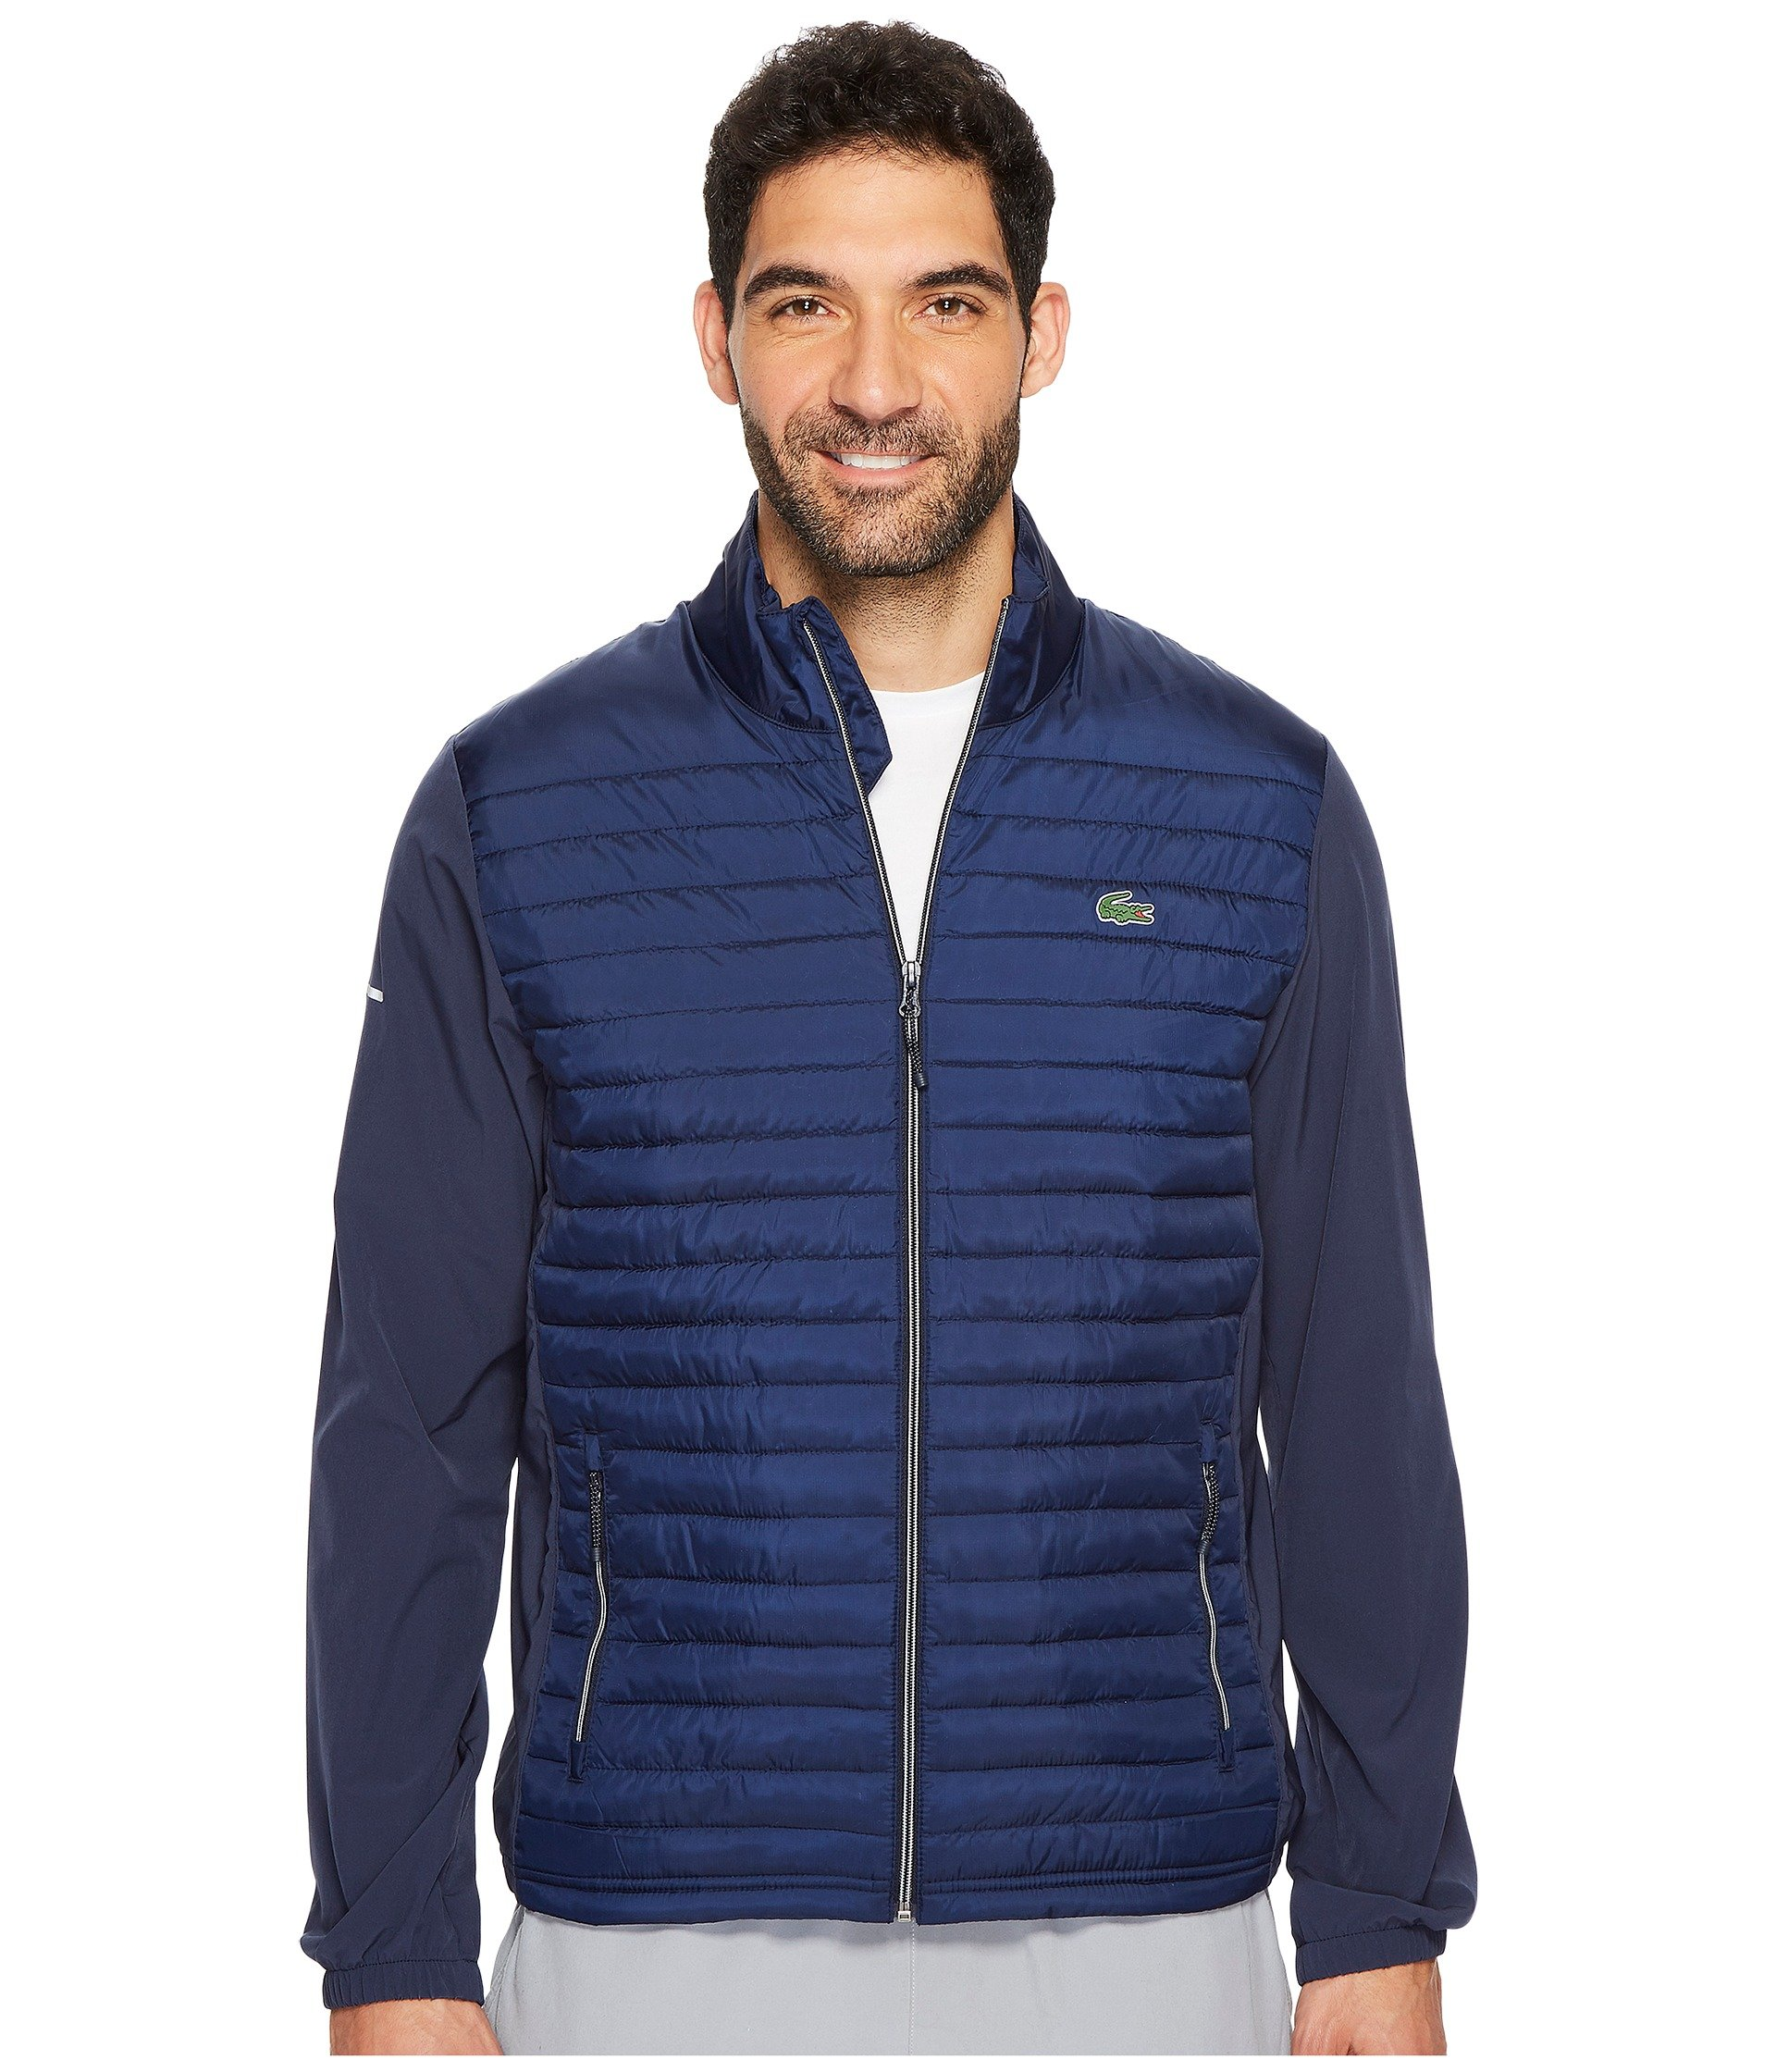 7c802e23 LACOSTE SPORT GOLF QUILTED JACKET, NAVY BLUE/NAVY BLUE | ModeSens